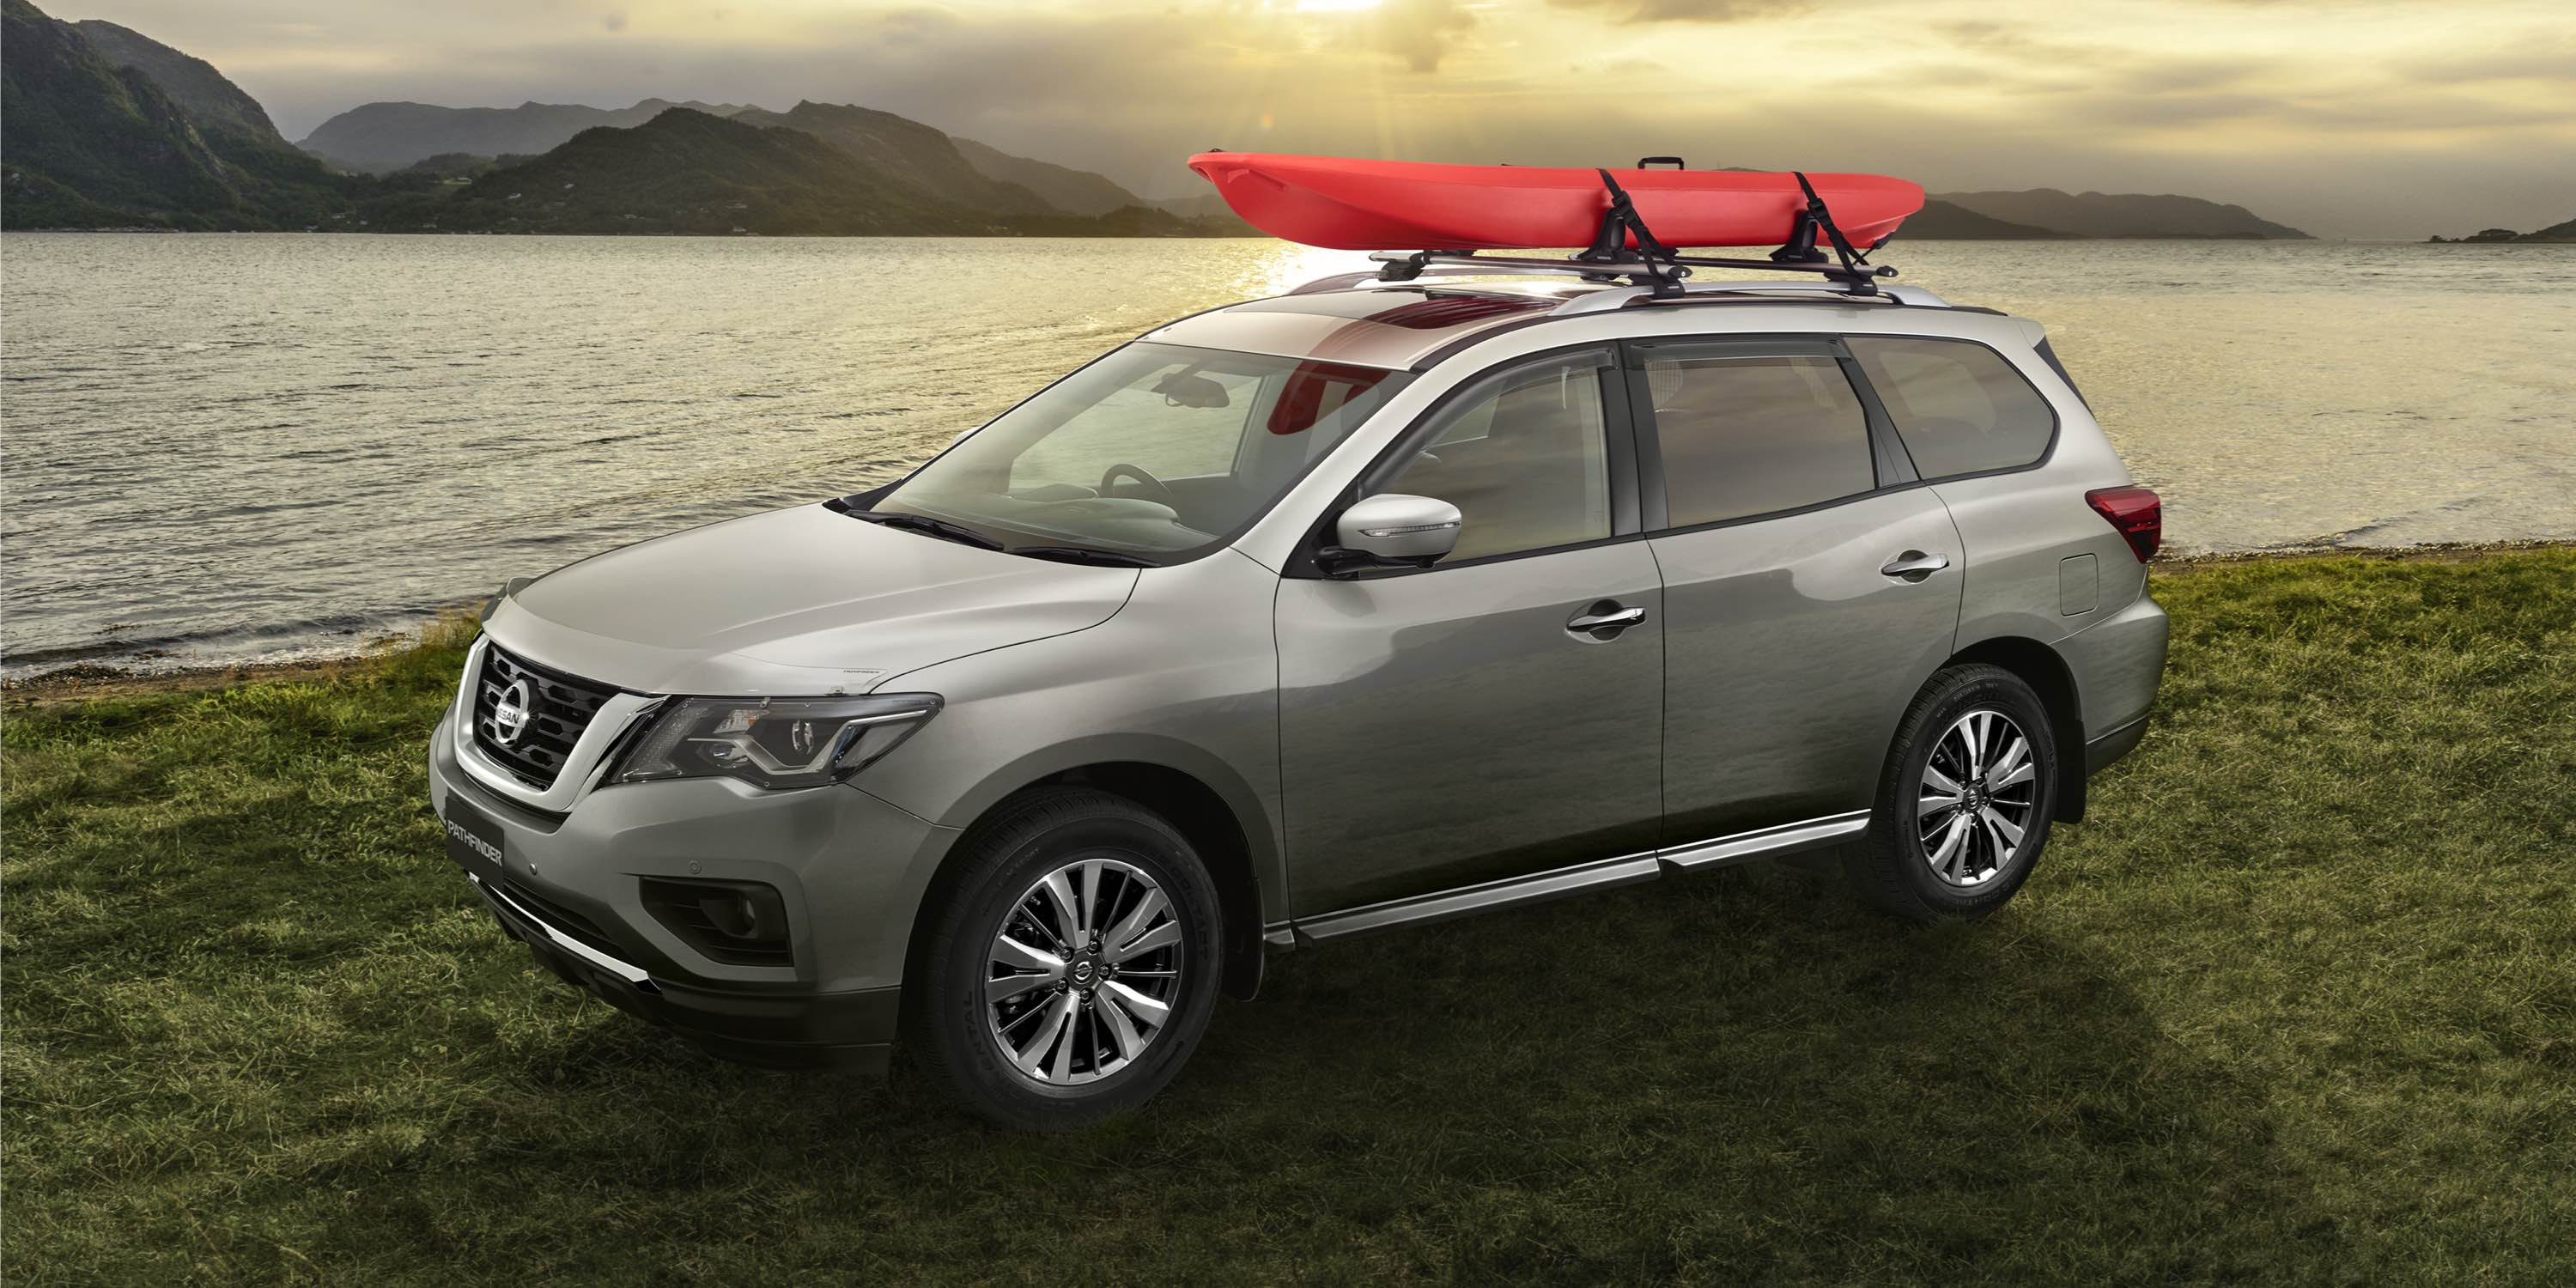 Nissan Pathfinder carrying kayak parked next to a peaceful lake